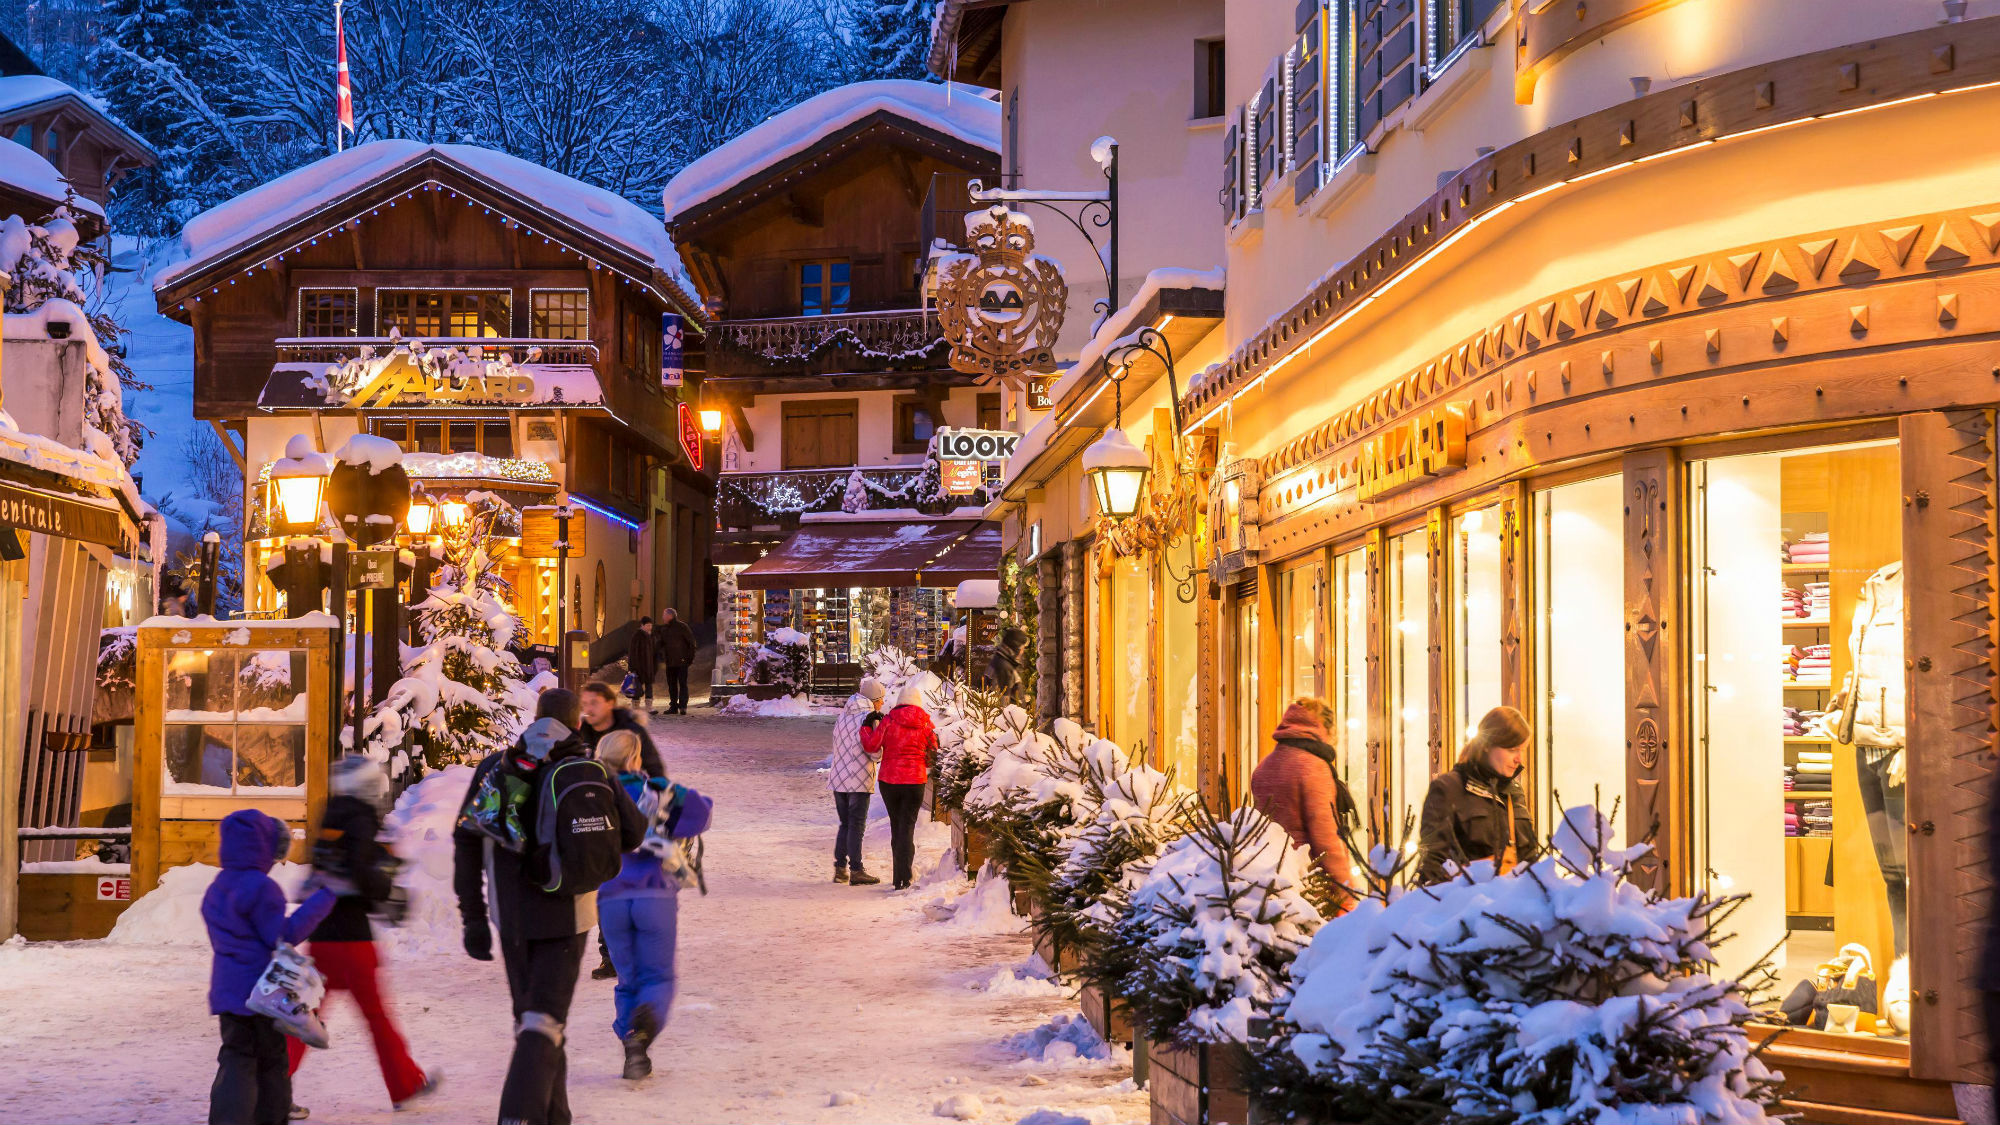 Office Tourisme Megeve Megeve Guide For A Ski Weekend In The French Alps